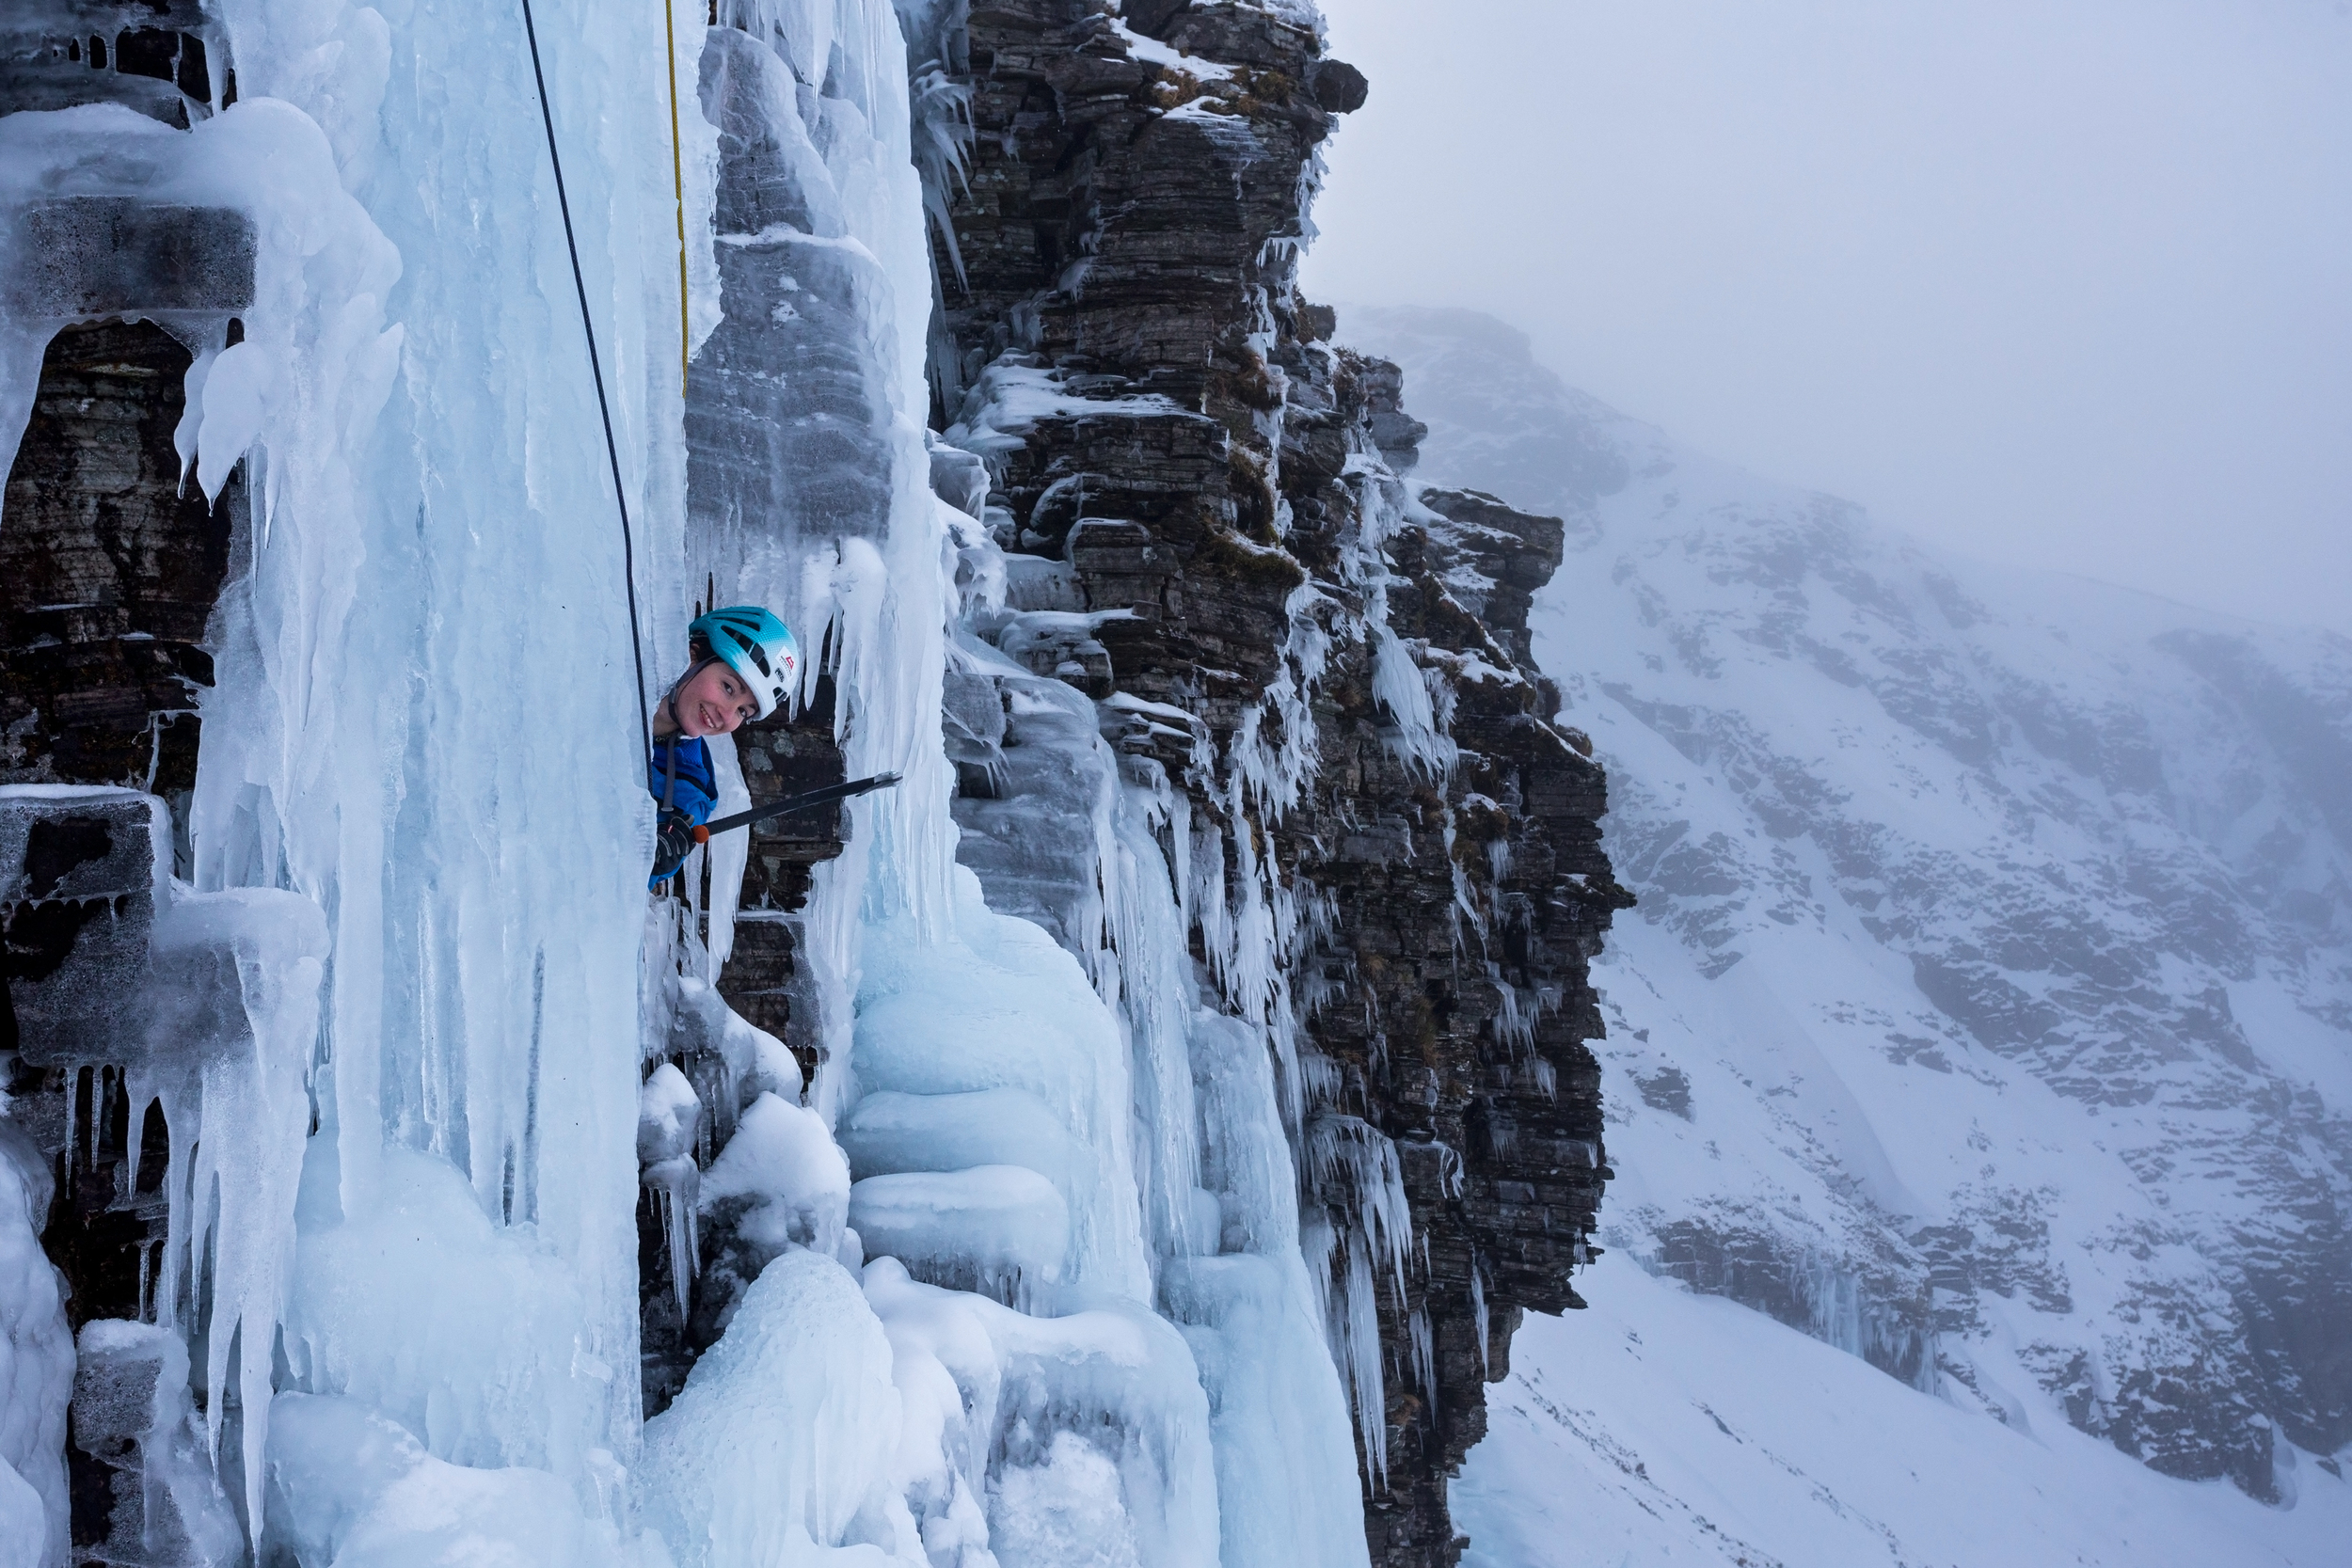 Natalie Berry in the ice cave half way up the route. (Photo: Chris Prescott)